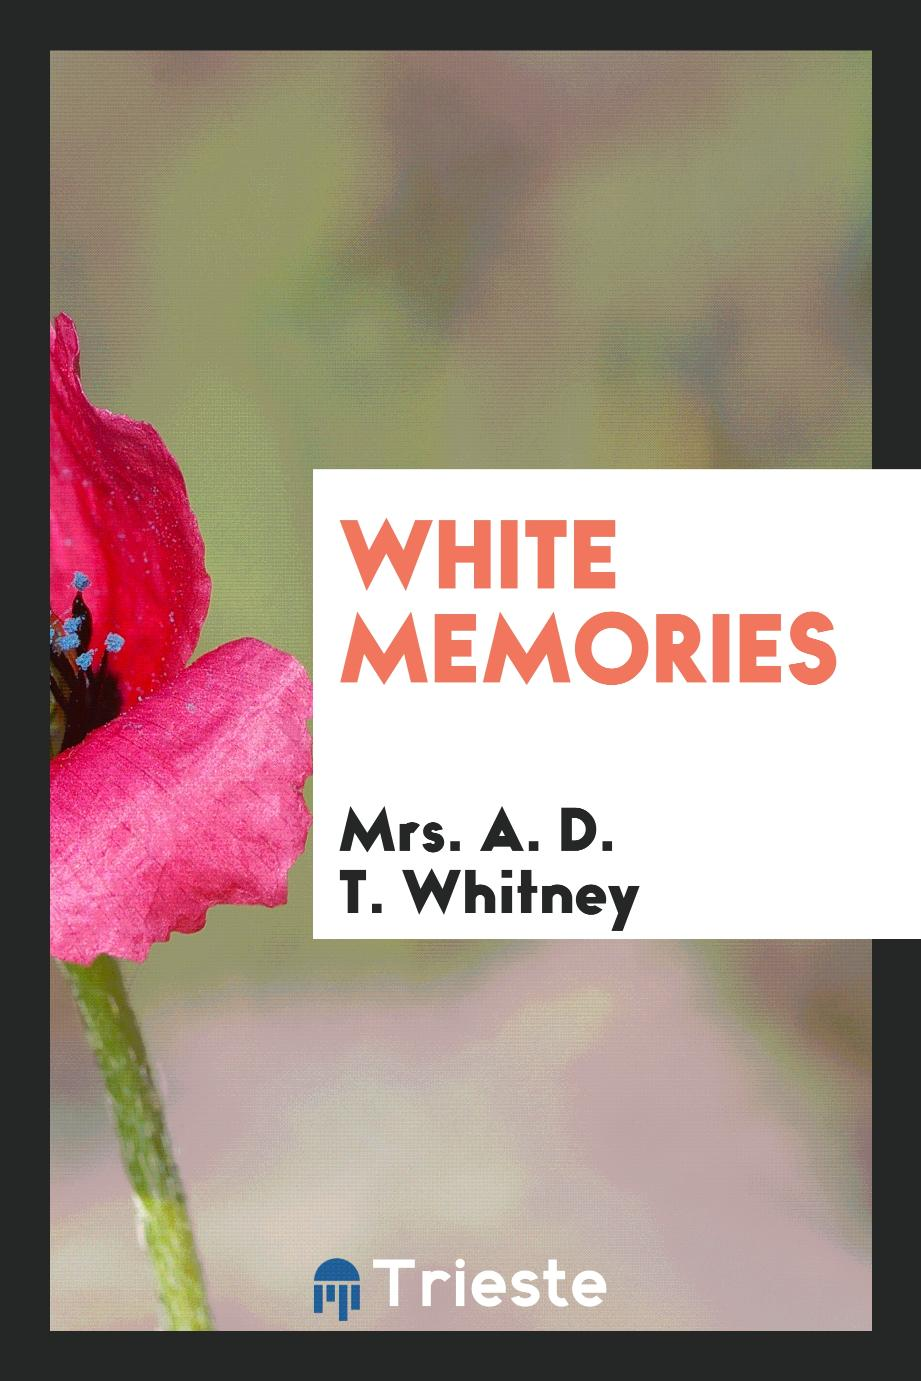 Mrs. A. D. T. Whitney - White Memories